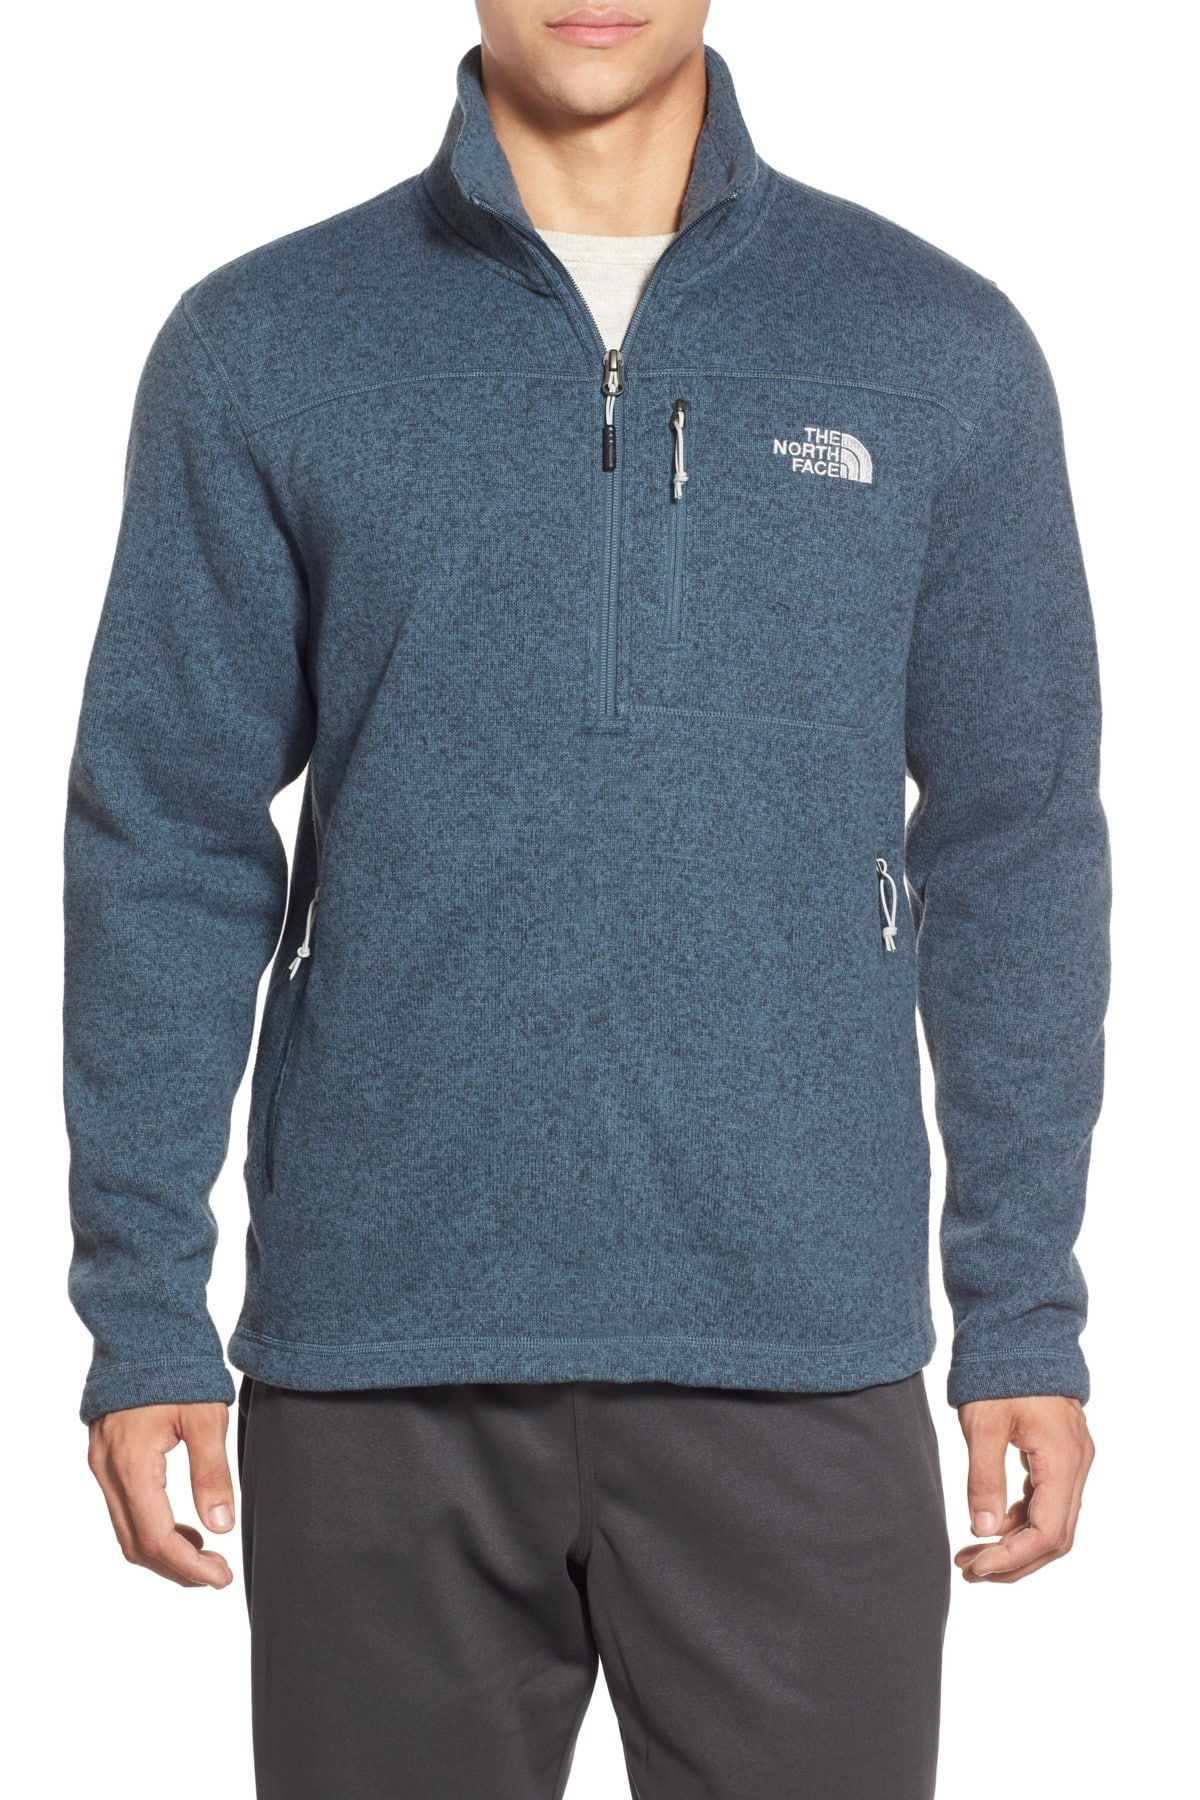 443bfead0 The North Face Gordon Lyons Quarter-Zip Fleece $29 + more from ...